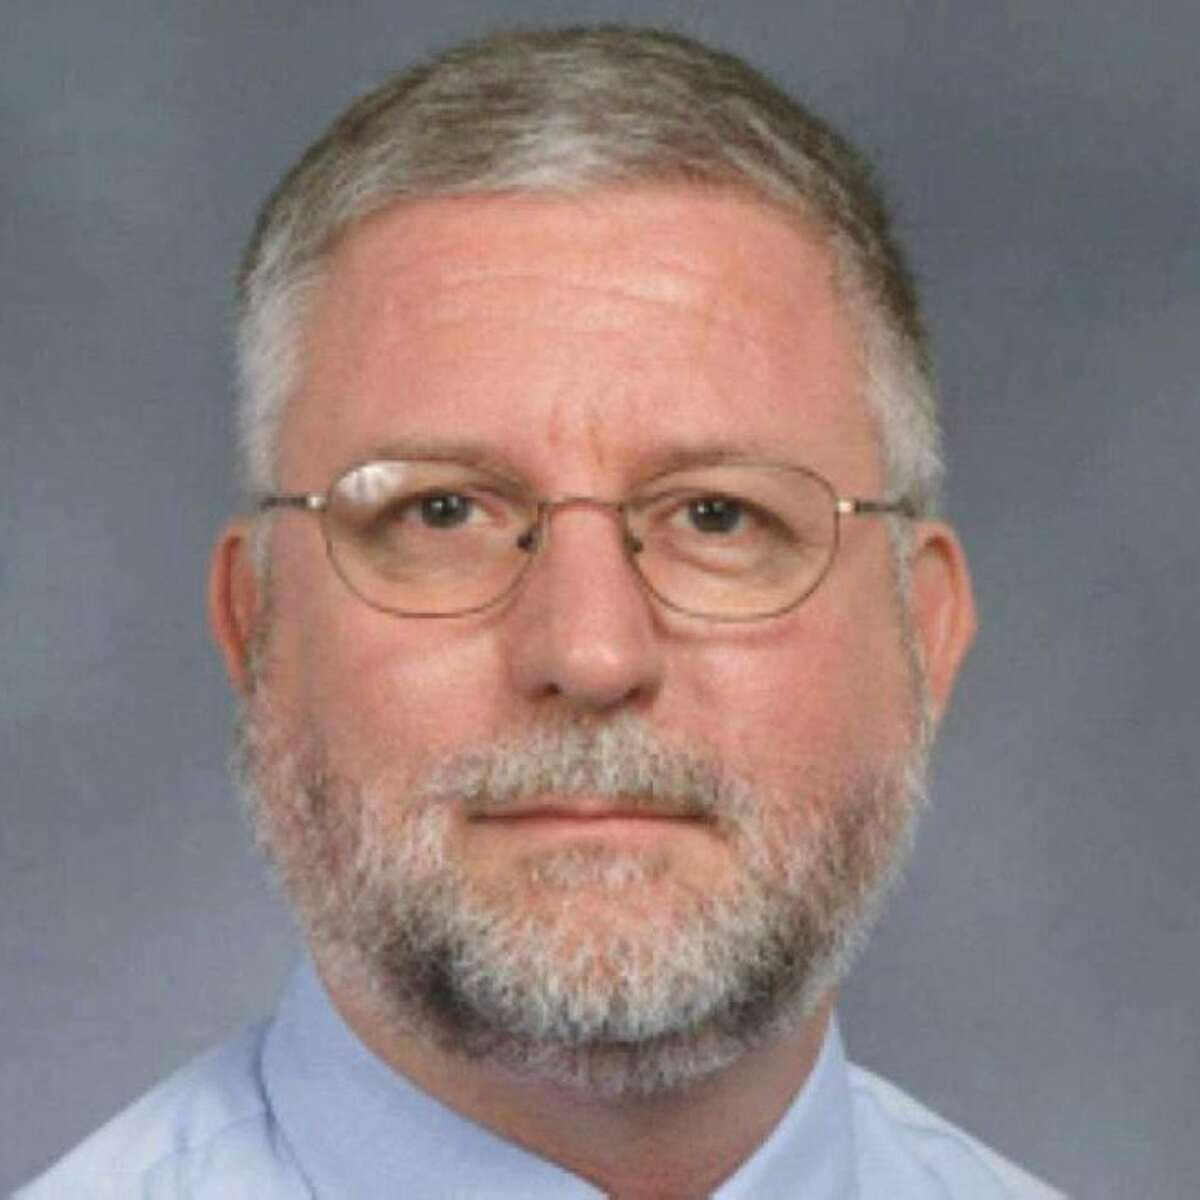 Three students died shortly after they were hypnotized by former North Port (Fla.) High School Principal George Kenney.